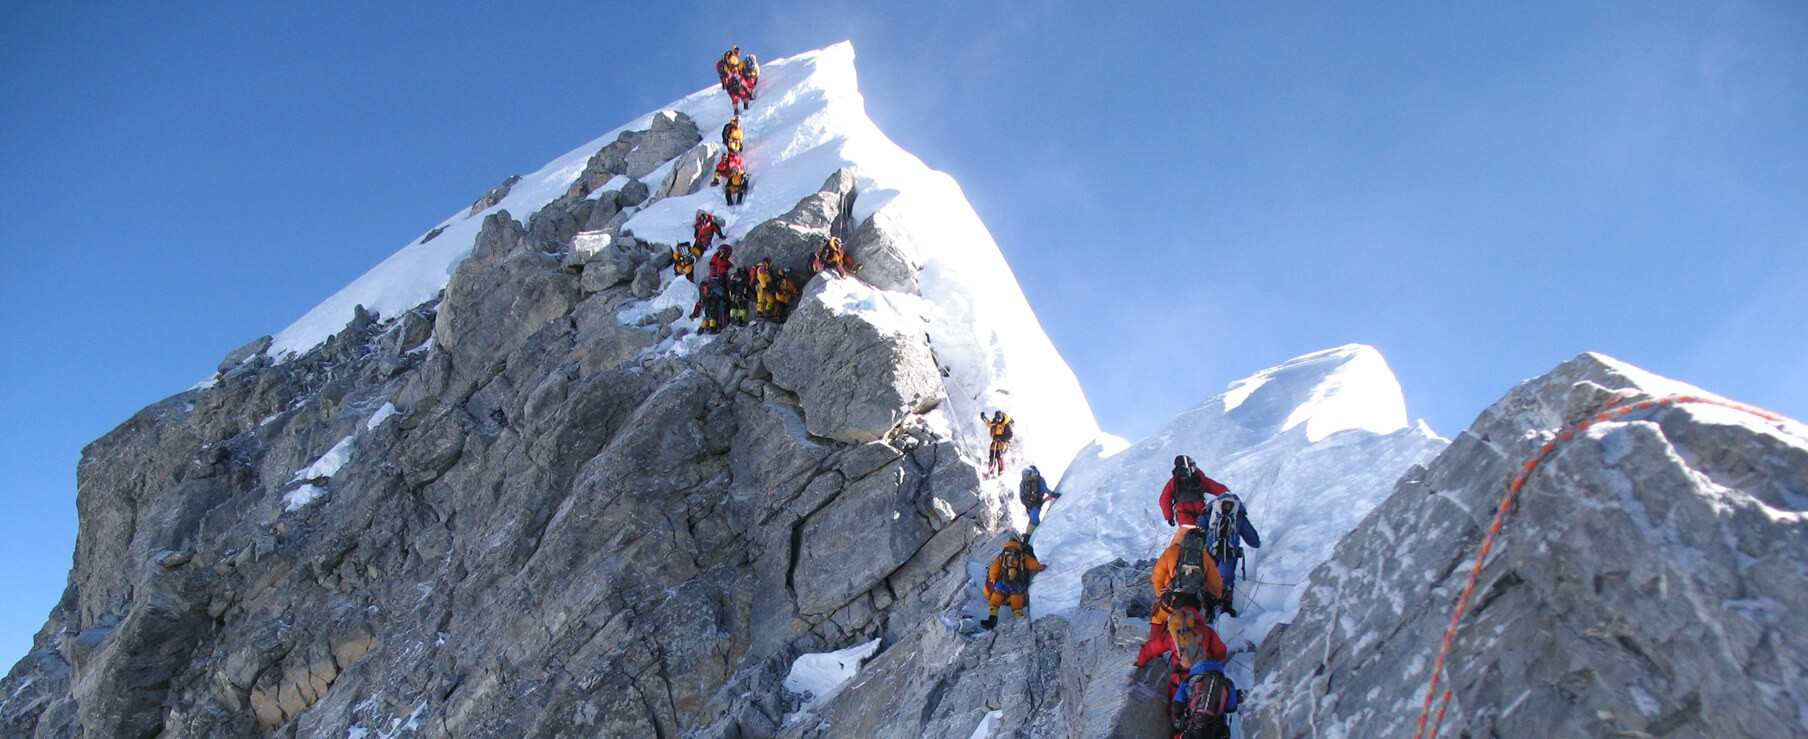 everest expedtion 2020